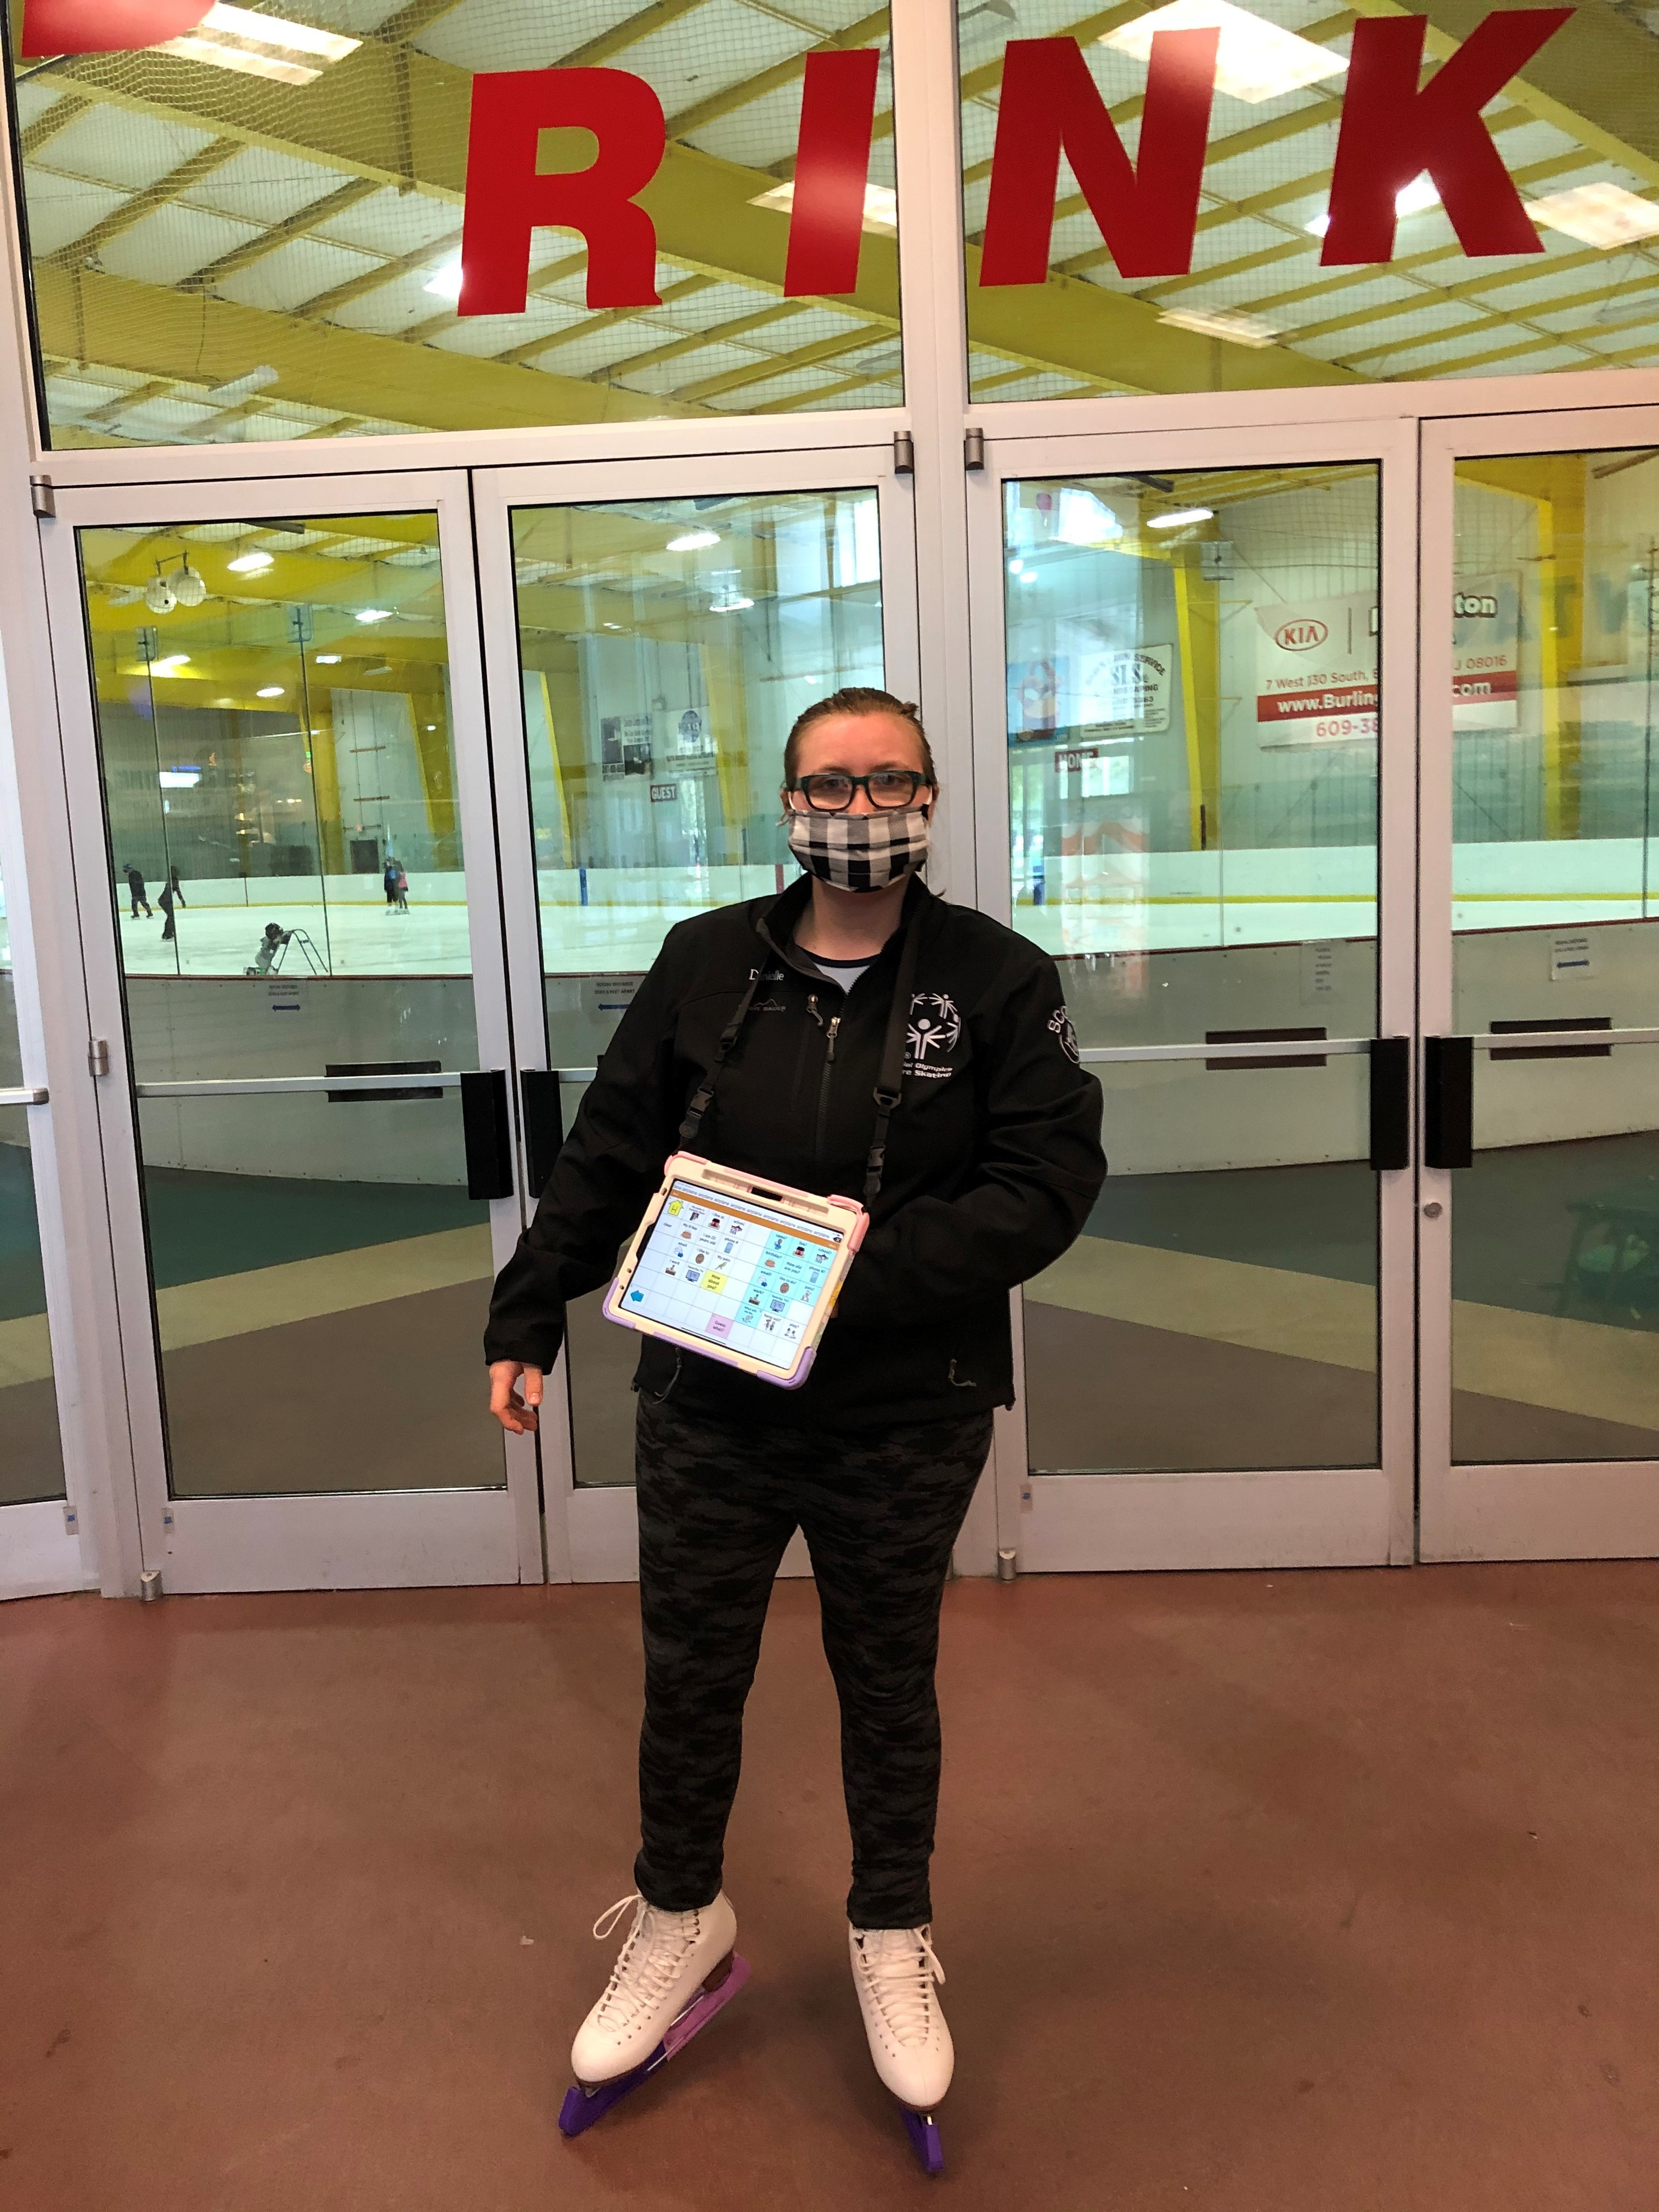 young woman with ipad and figure skates standing in front of ice skating rink